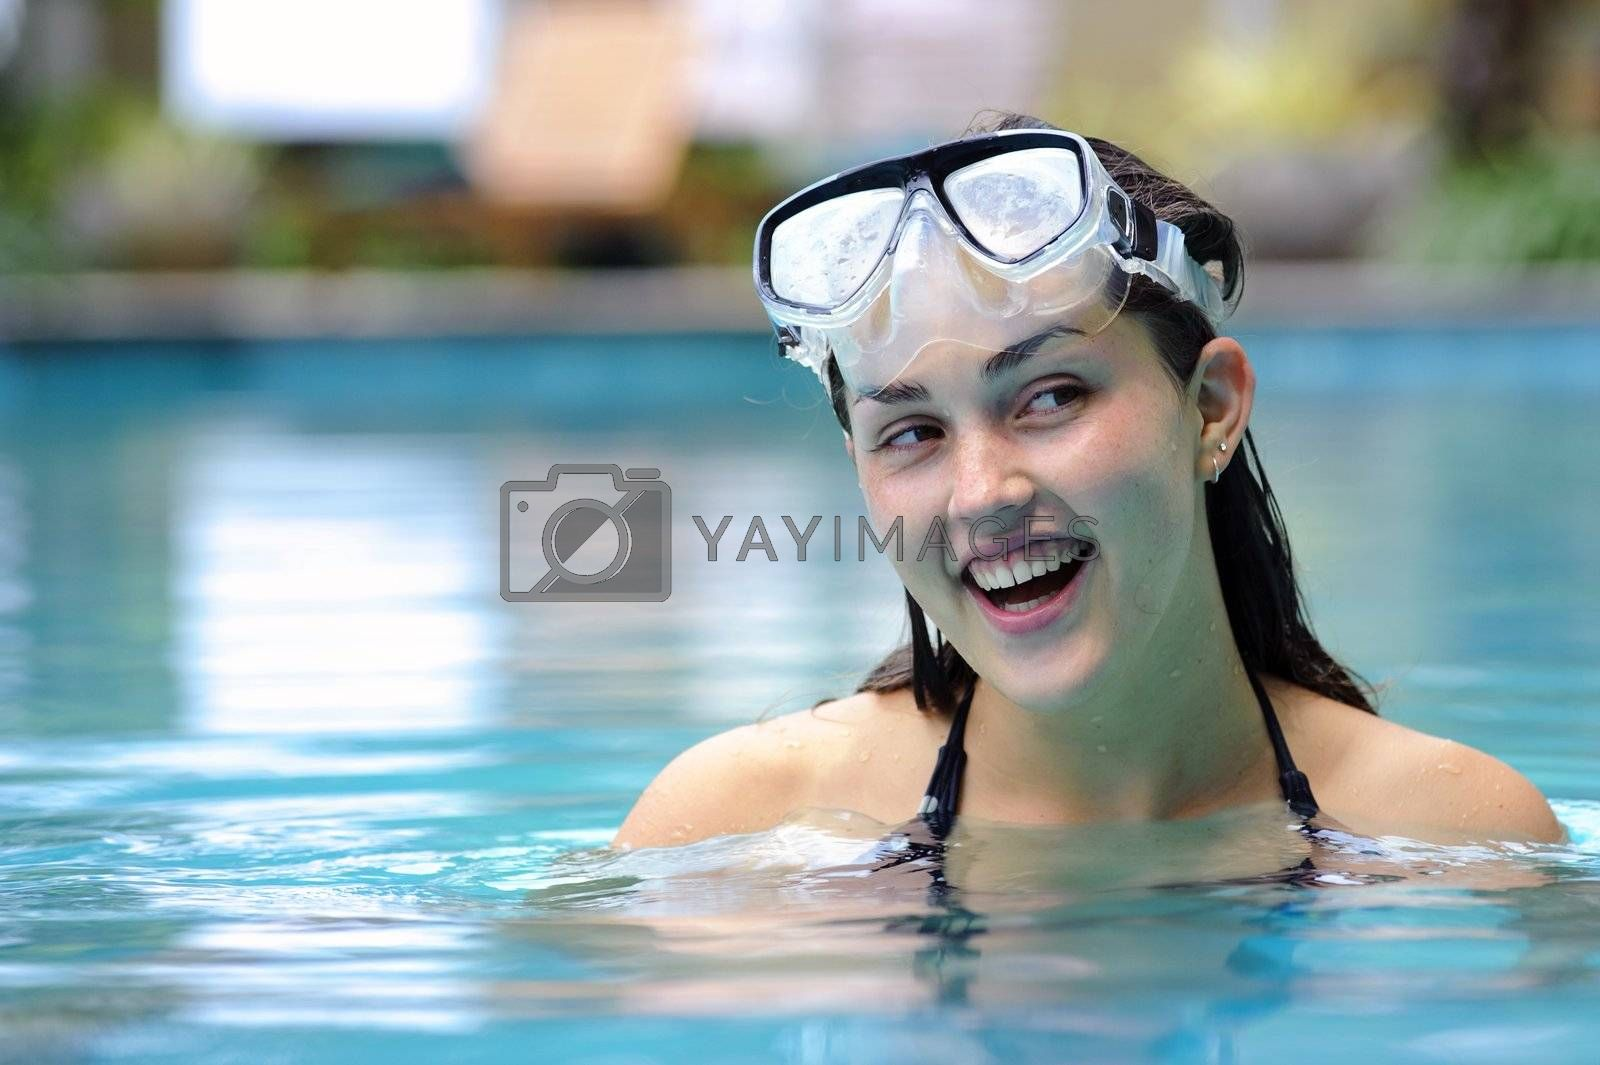 Pretty girl plays in the pool with her scuba mask